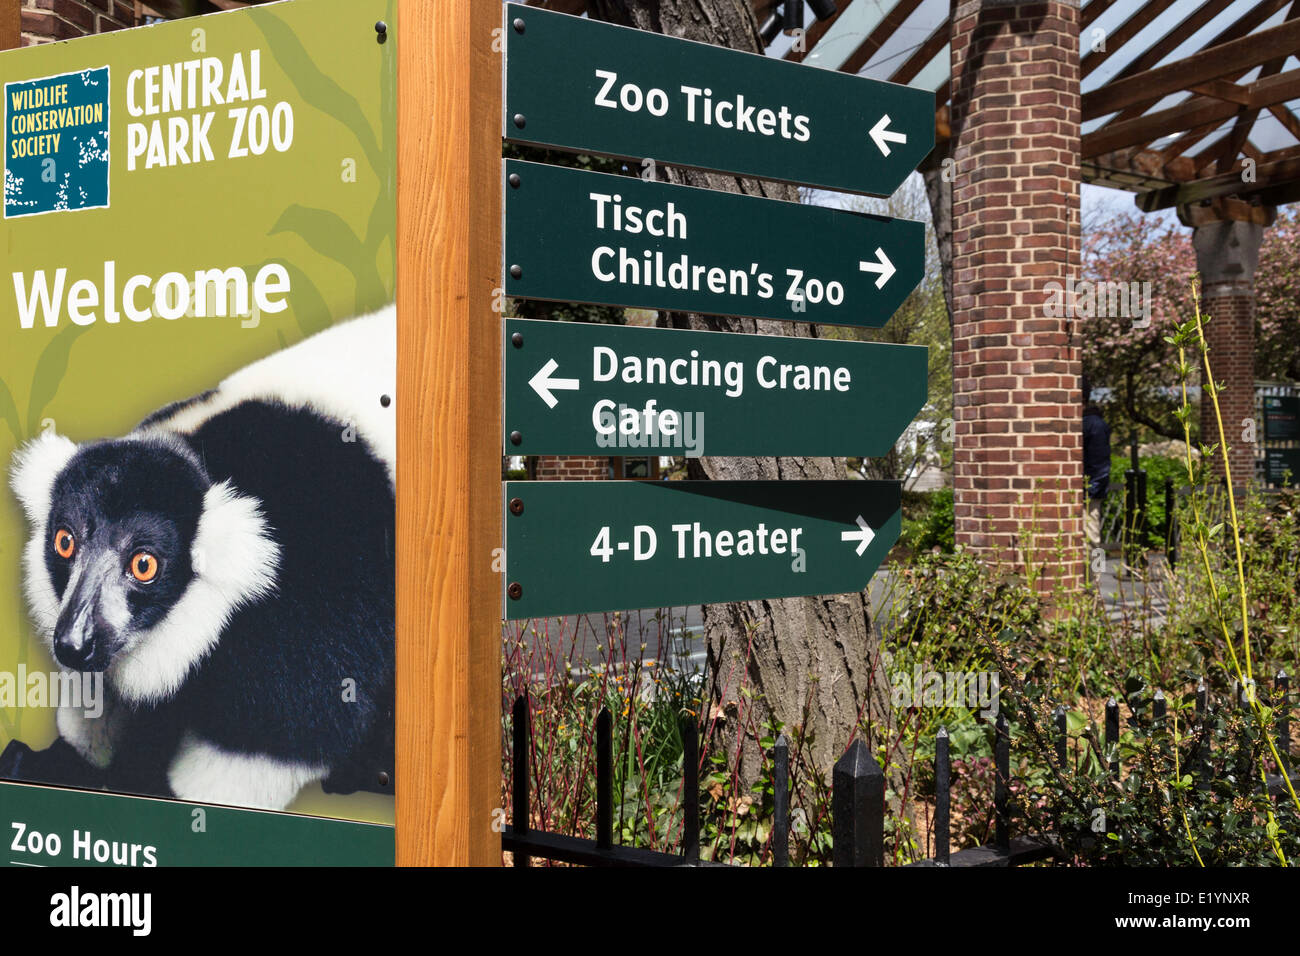 central park zoo signs nyc usa stock photo royalty free image 70066047 alamy. Black Bedroom Furniture Sets. Home Design Ideas